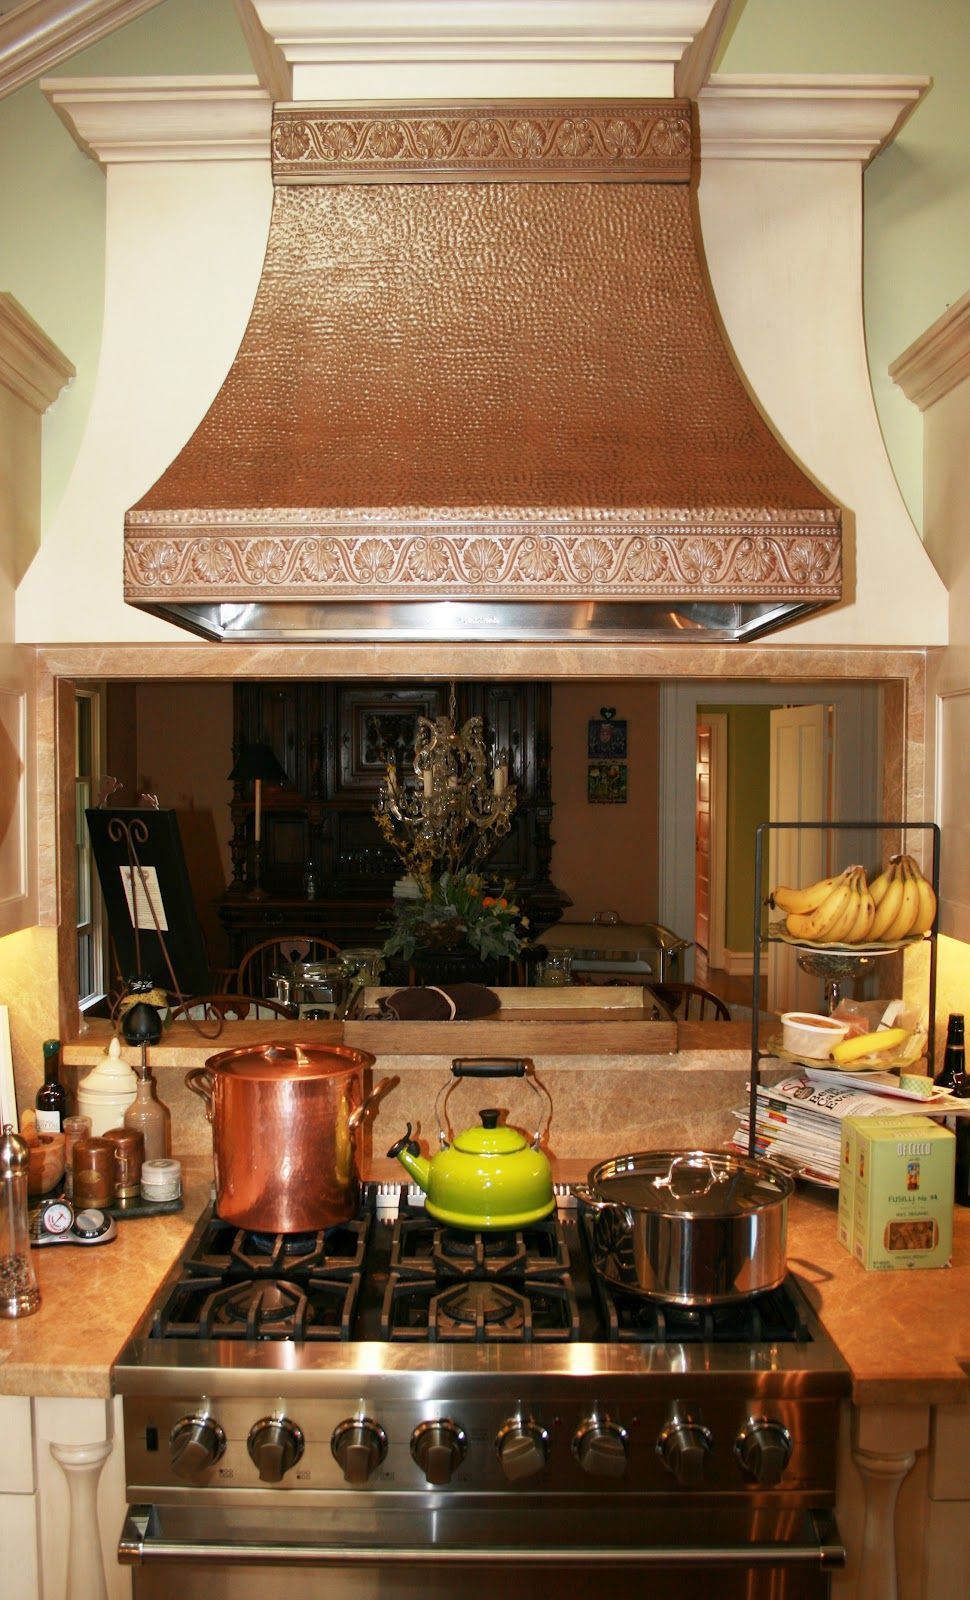 kitchen pass through over stove | copper embossed hood caps off ...